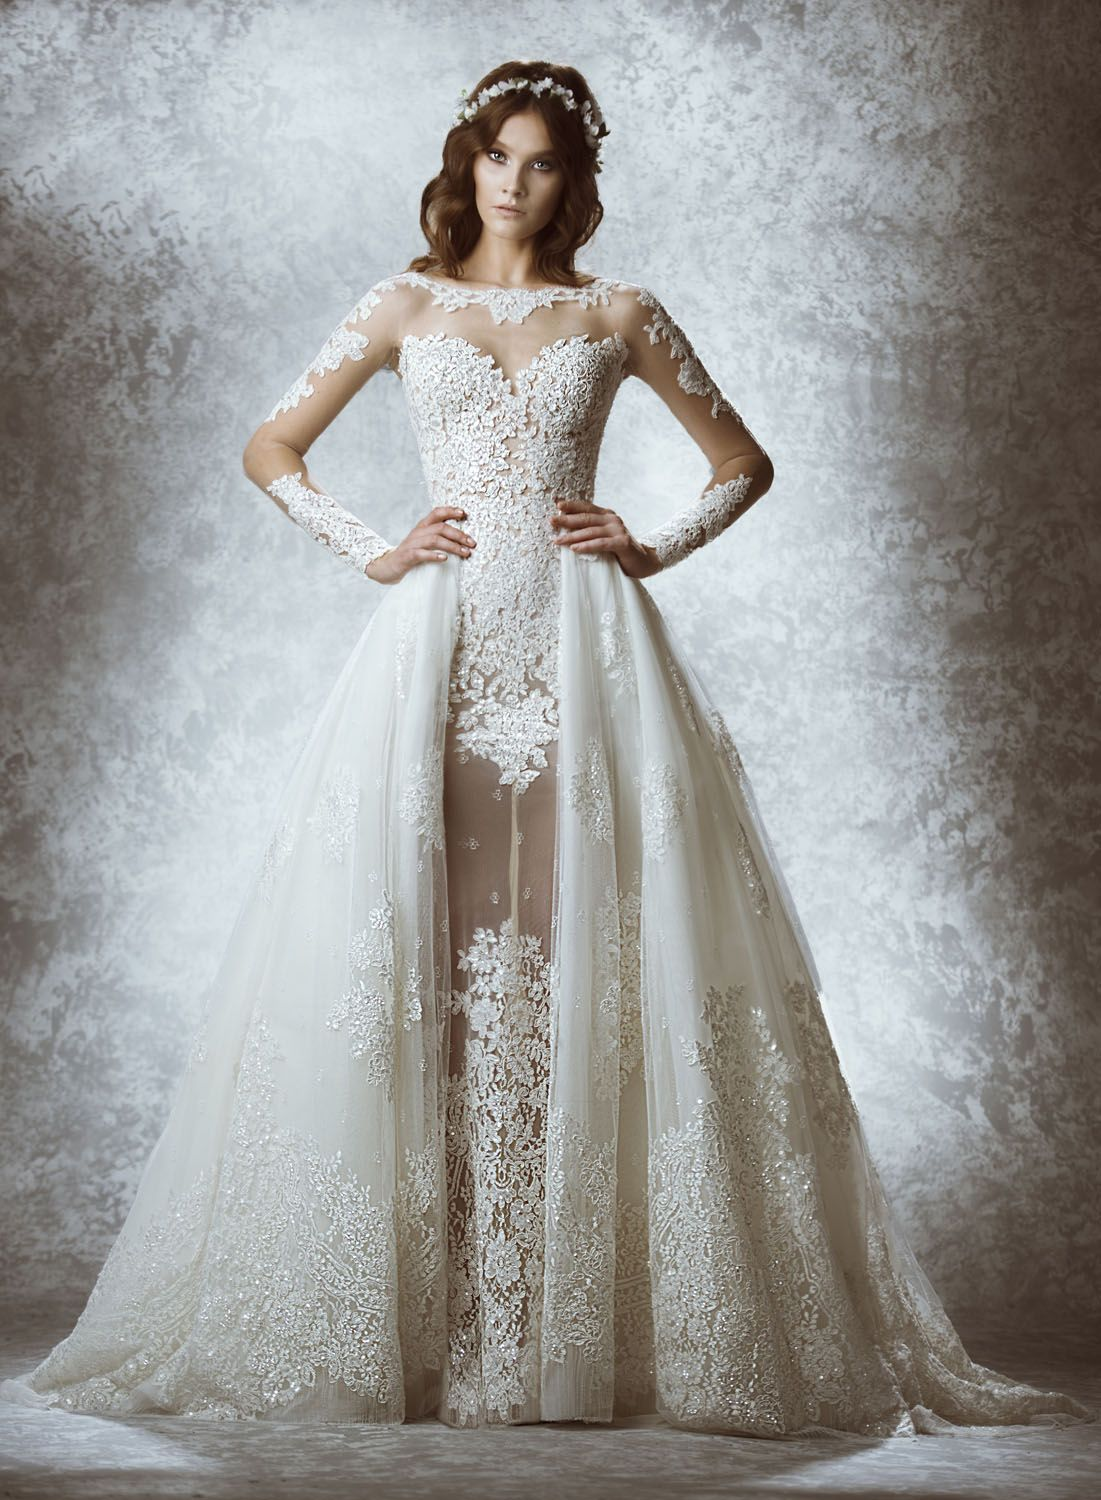 Bridal Sample Zuhair Murad Mia Delicately Sequined Lace And Sheath Long Sleeve Wedding Dresatching Overskirt That Is Removable For Two Looks